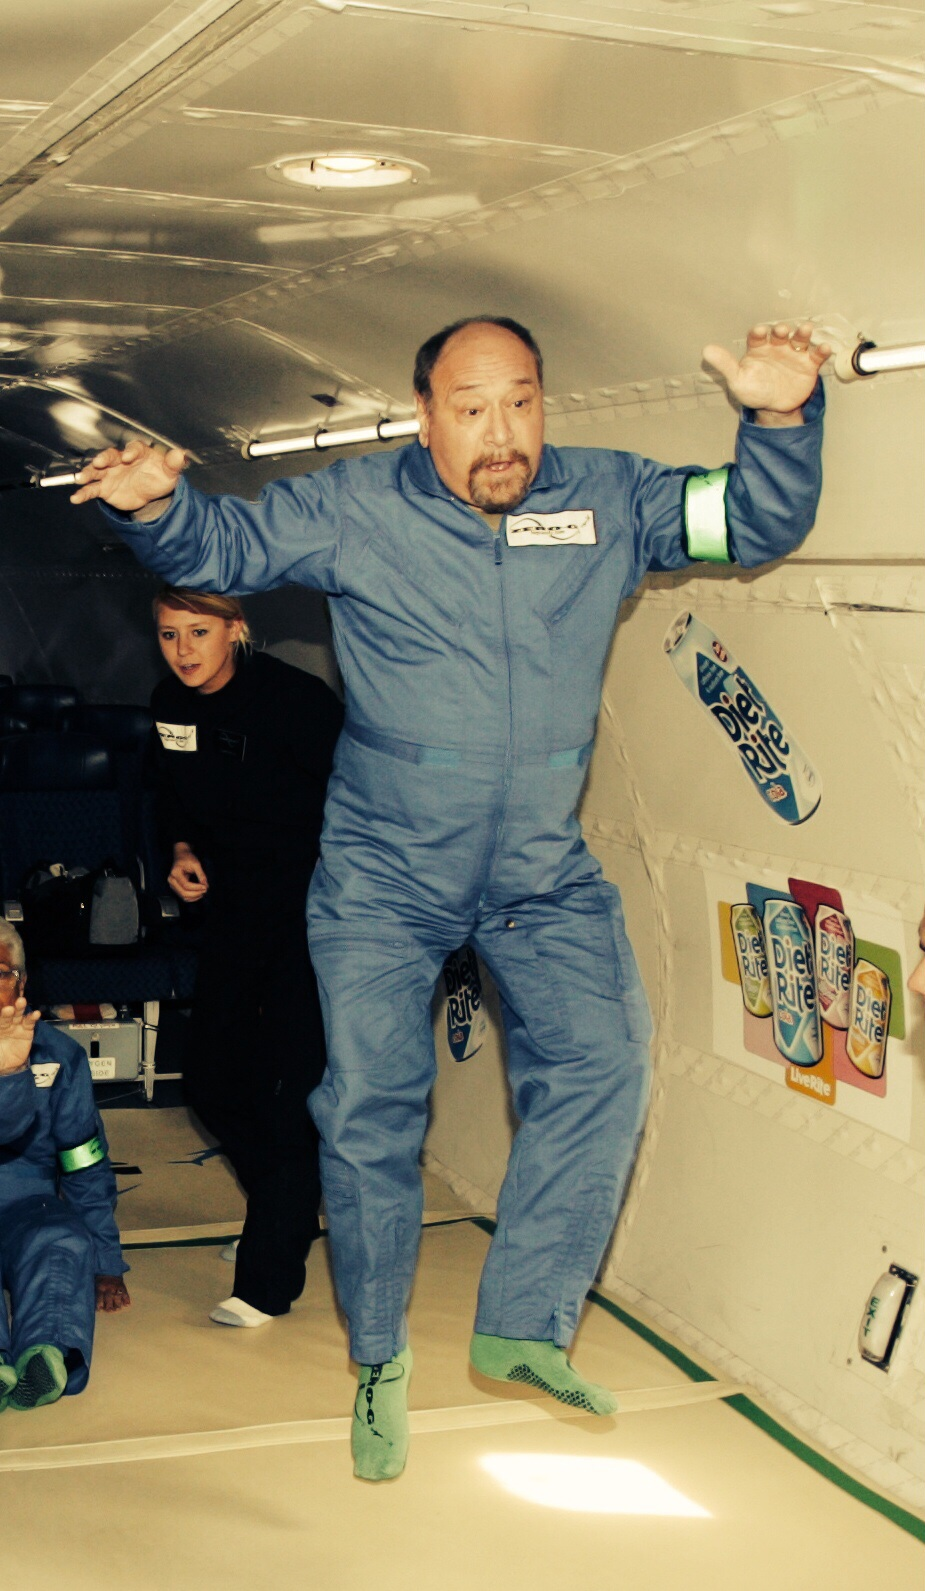 Mid-parabola. Zero-G flight. October 2004.